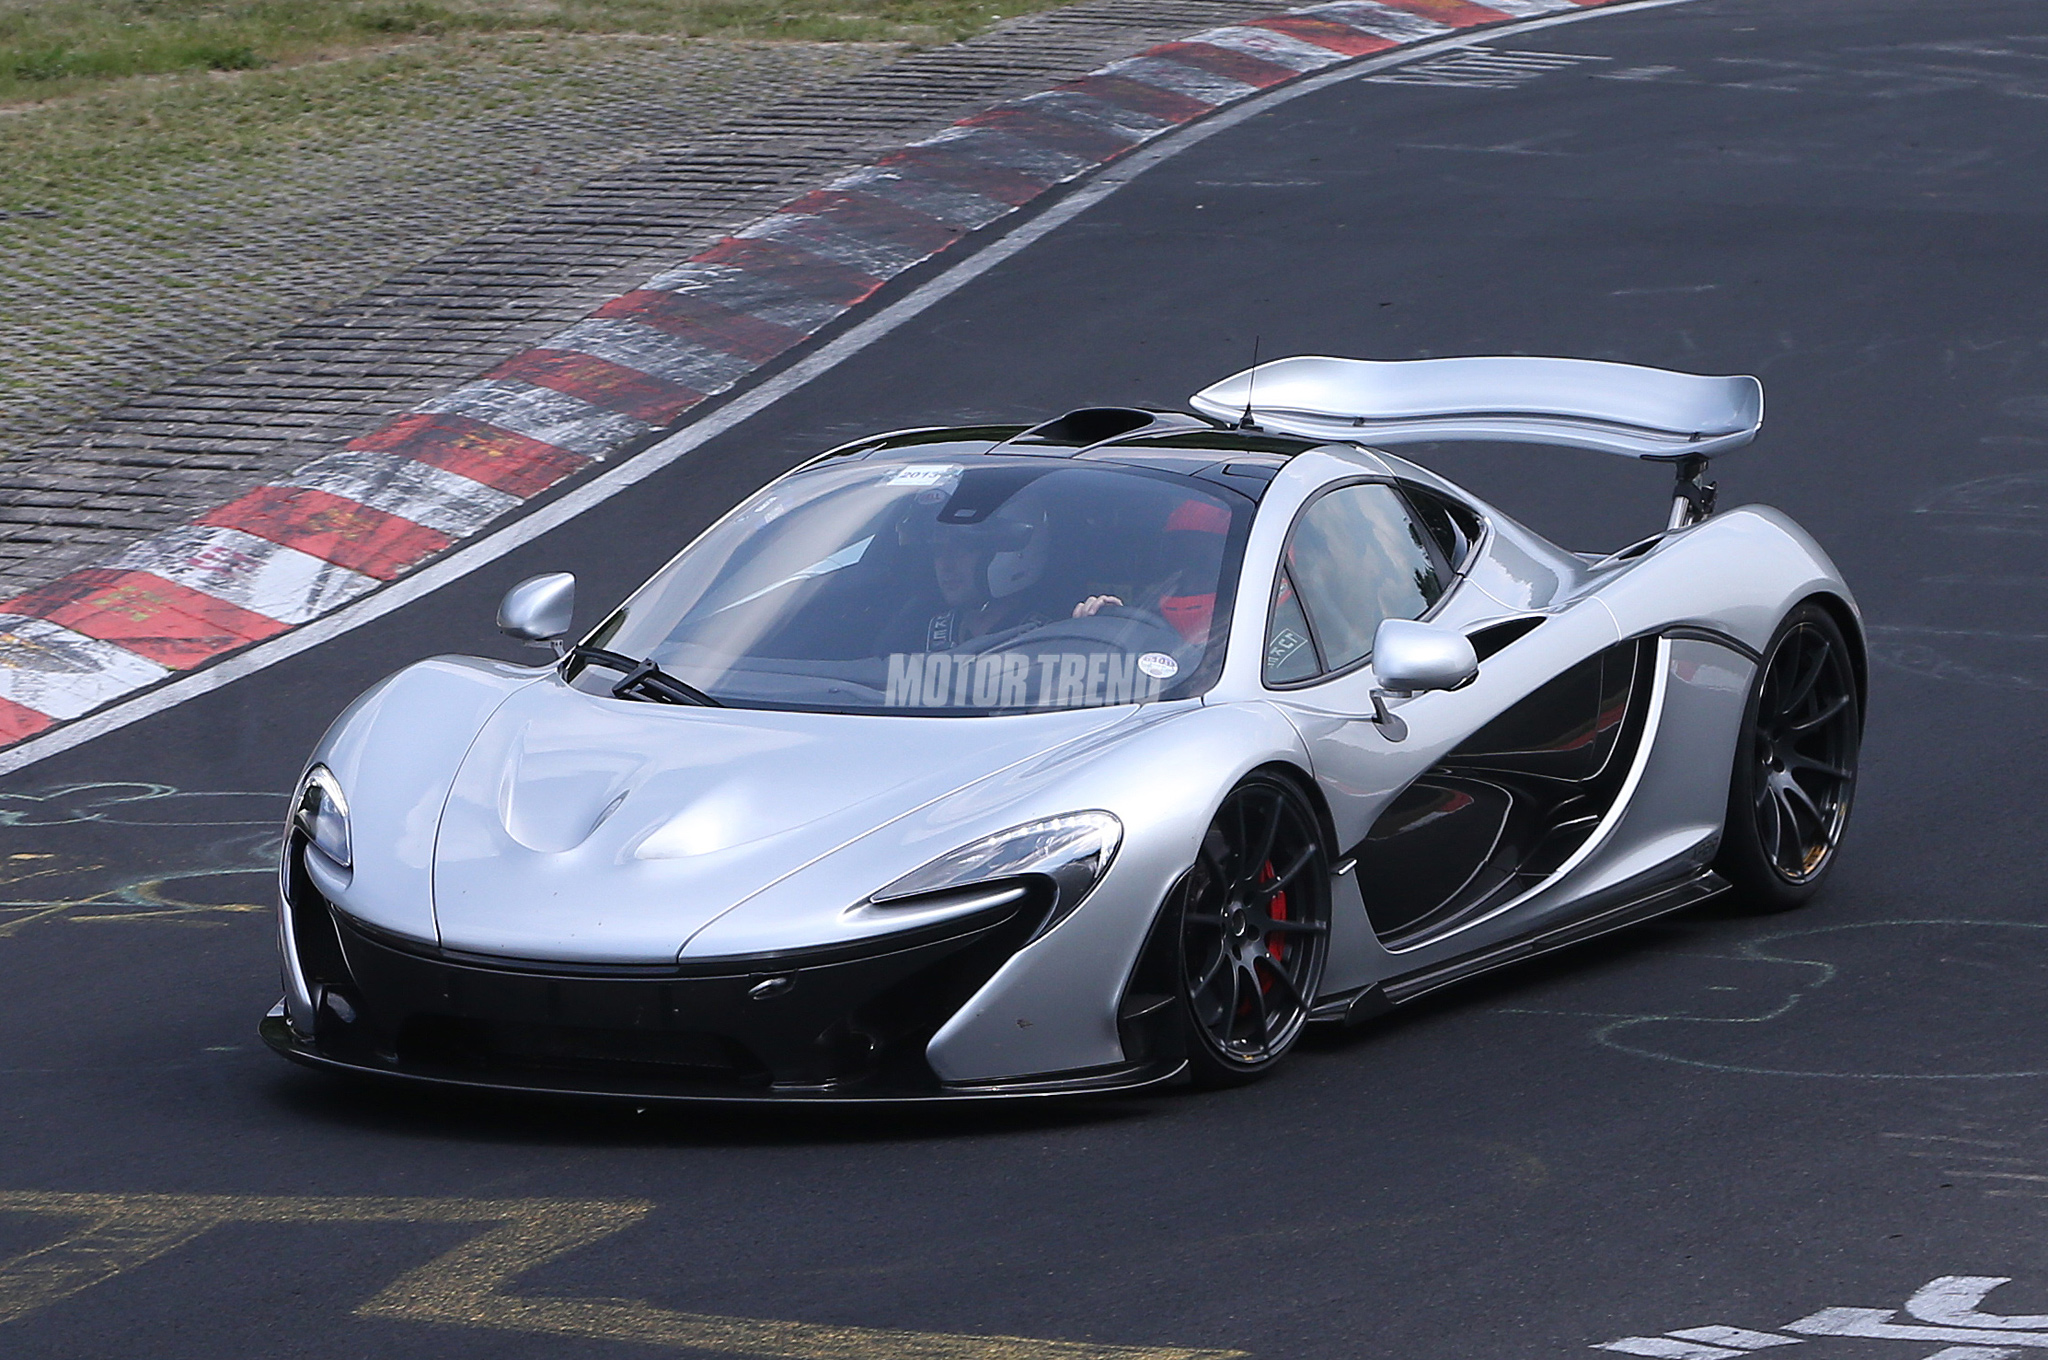 Spied! Could This McLaren P1 XP2R Prototype be Another Variant?